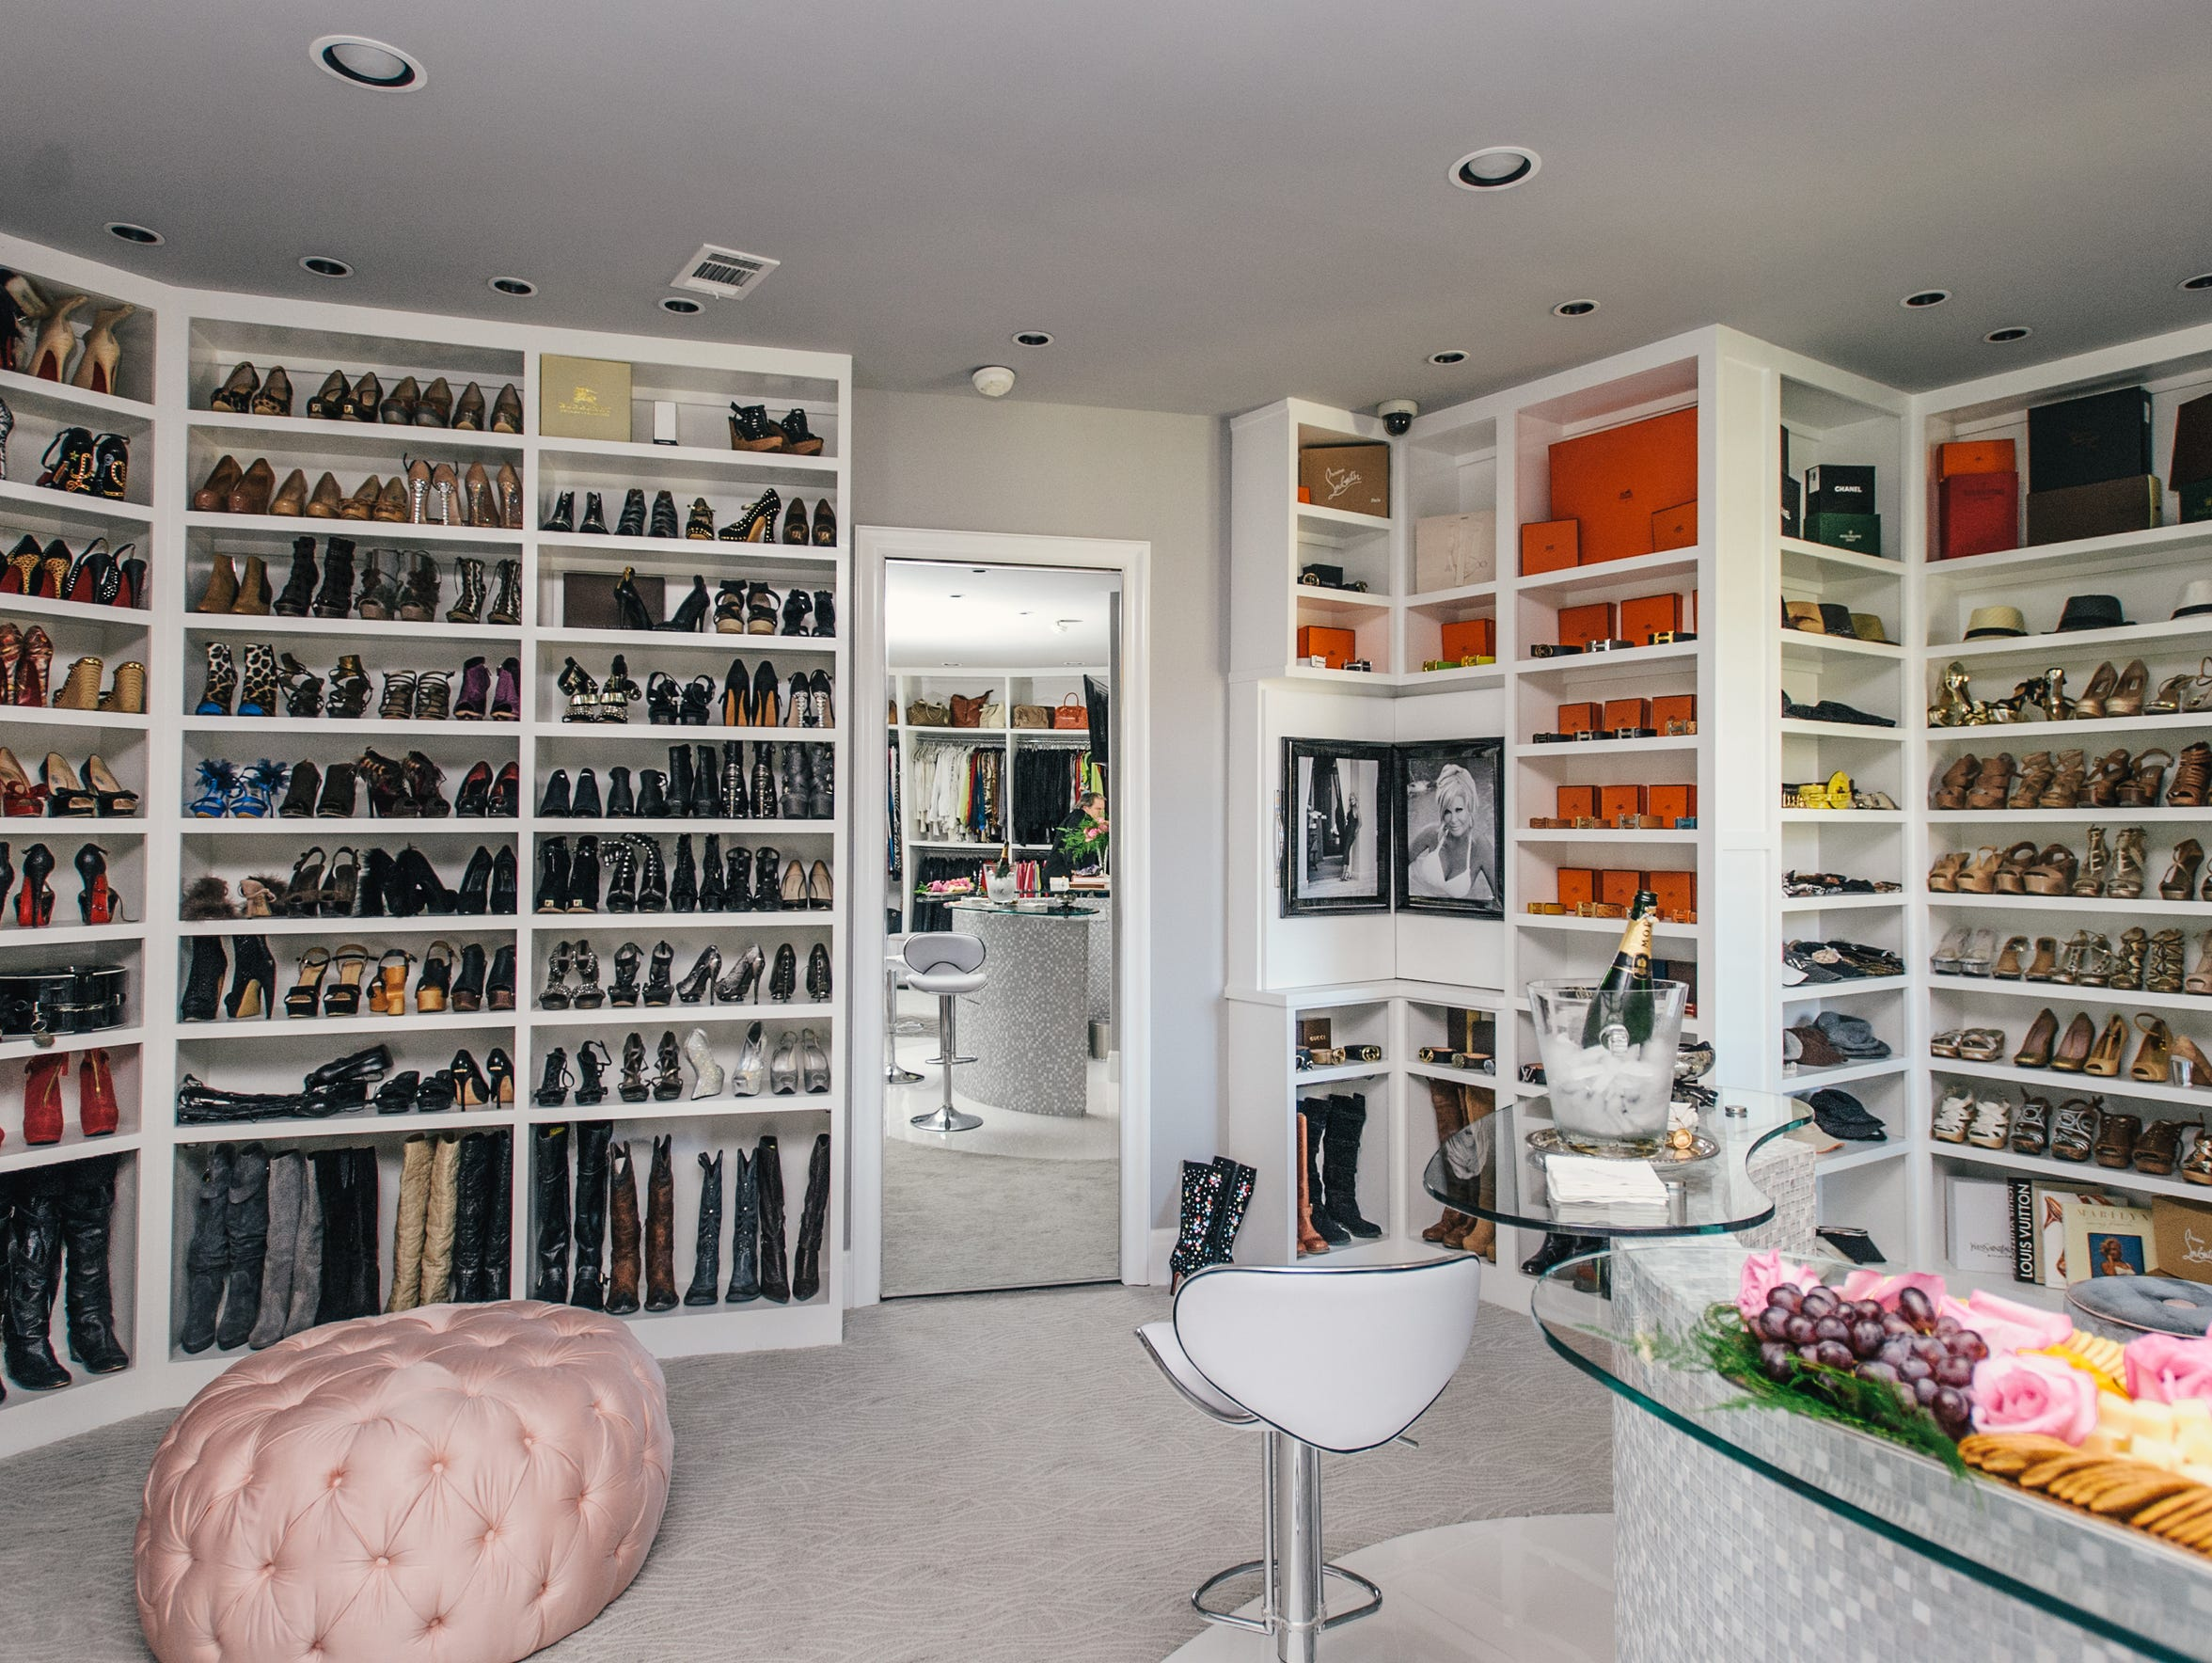 Theresa Roemer with world s biggest closet shares personal skeletons